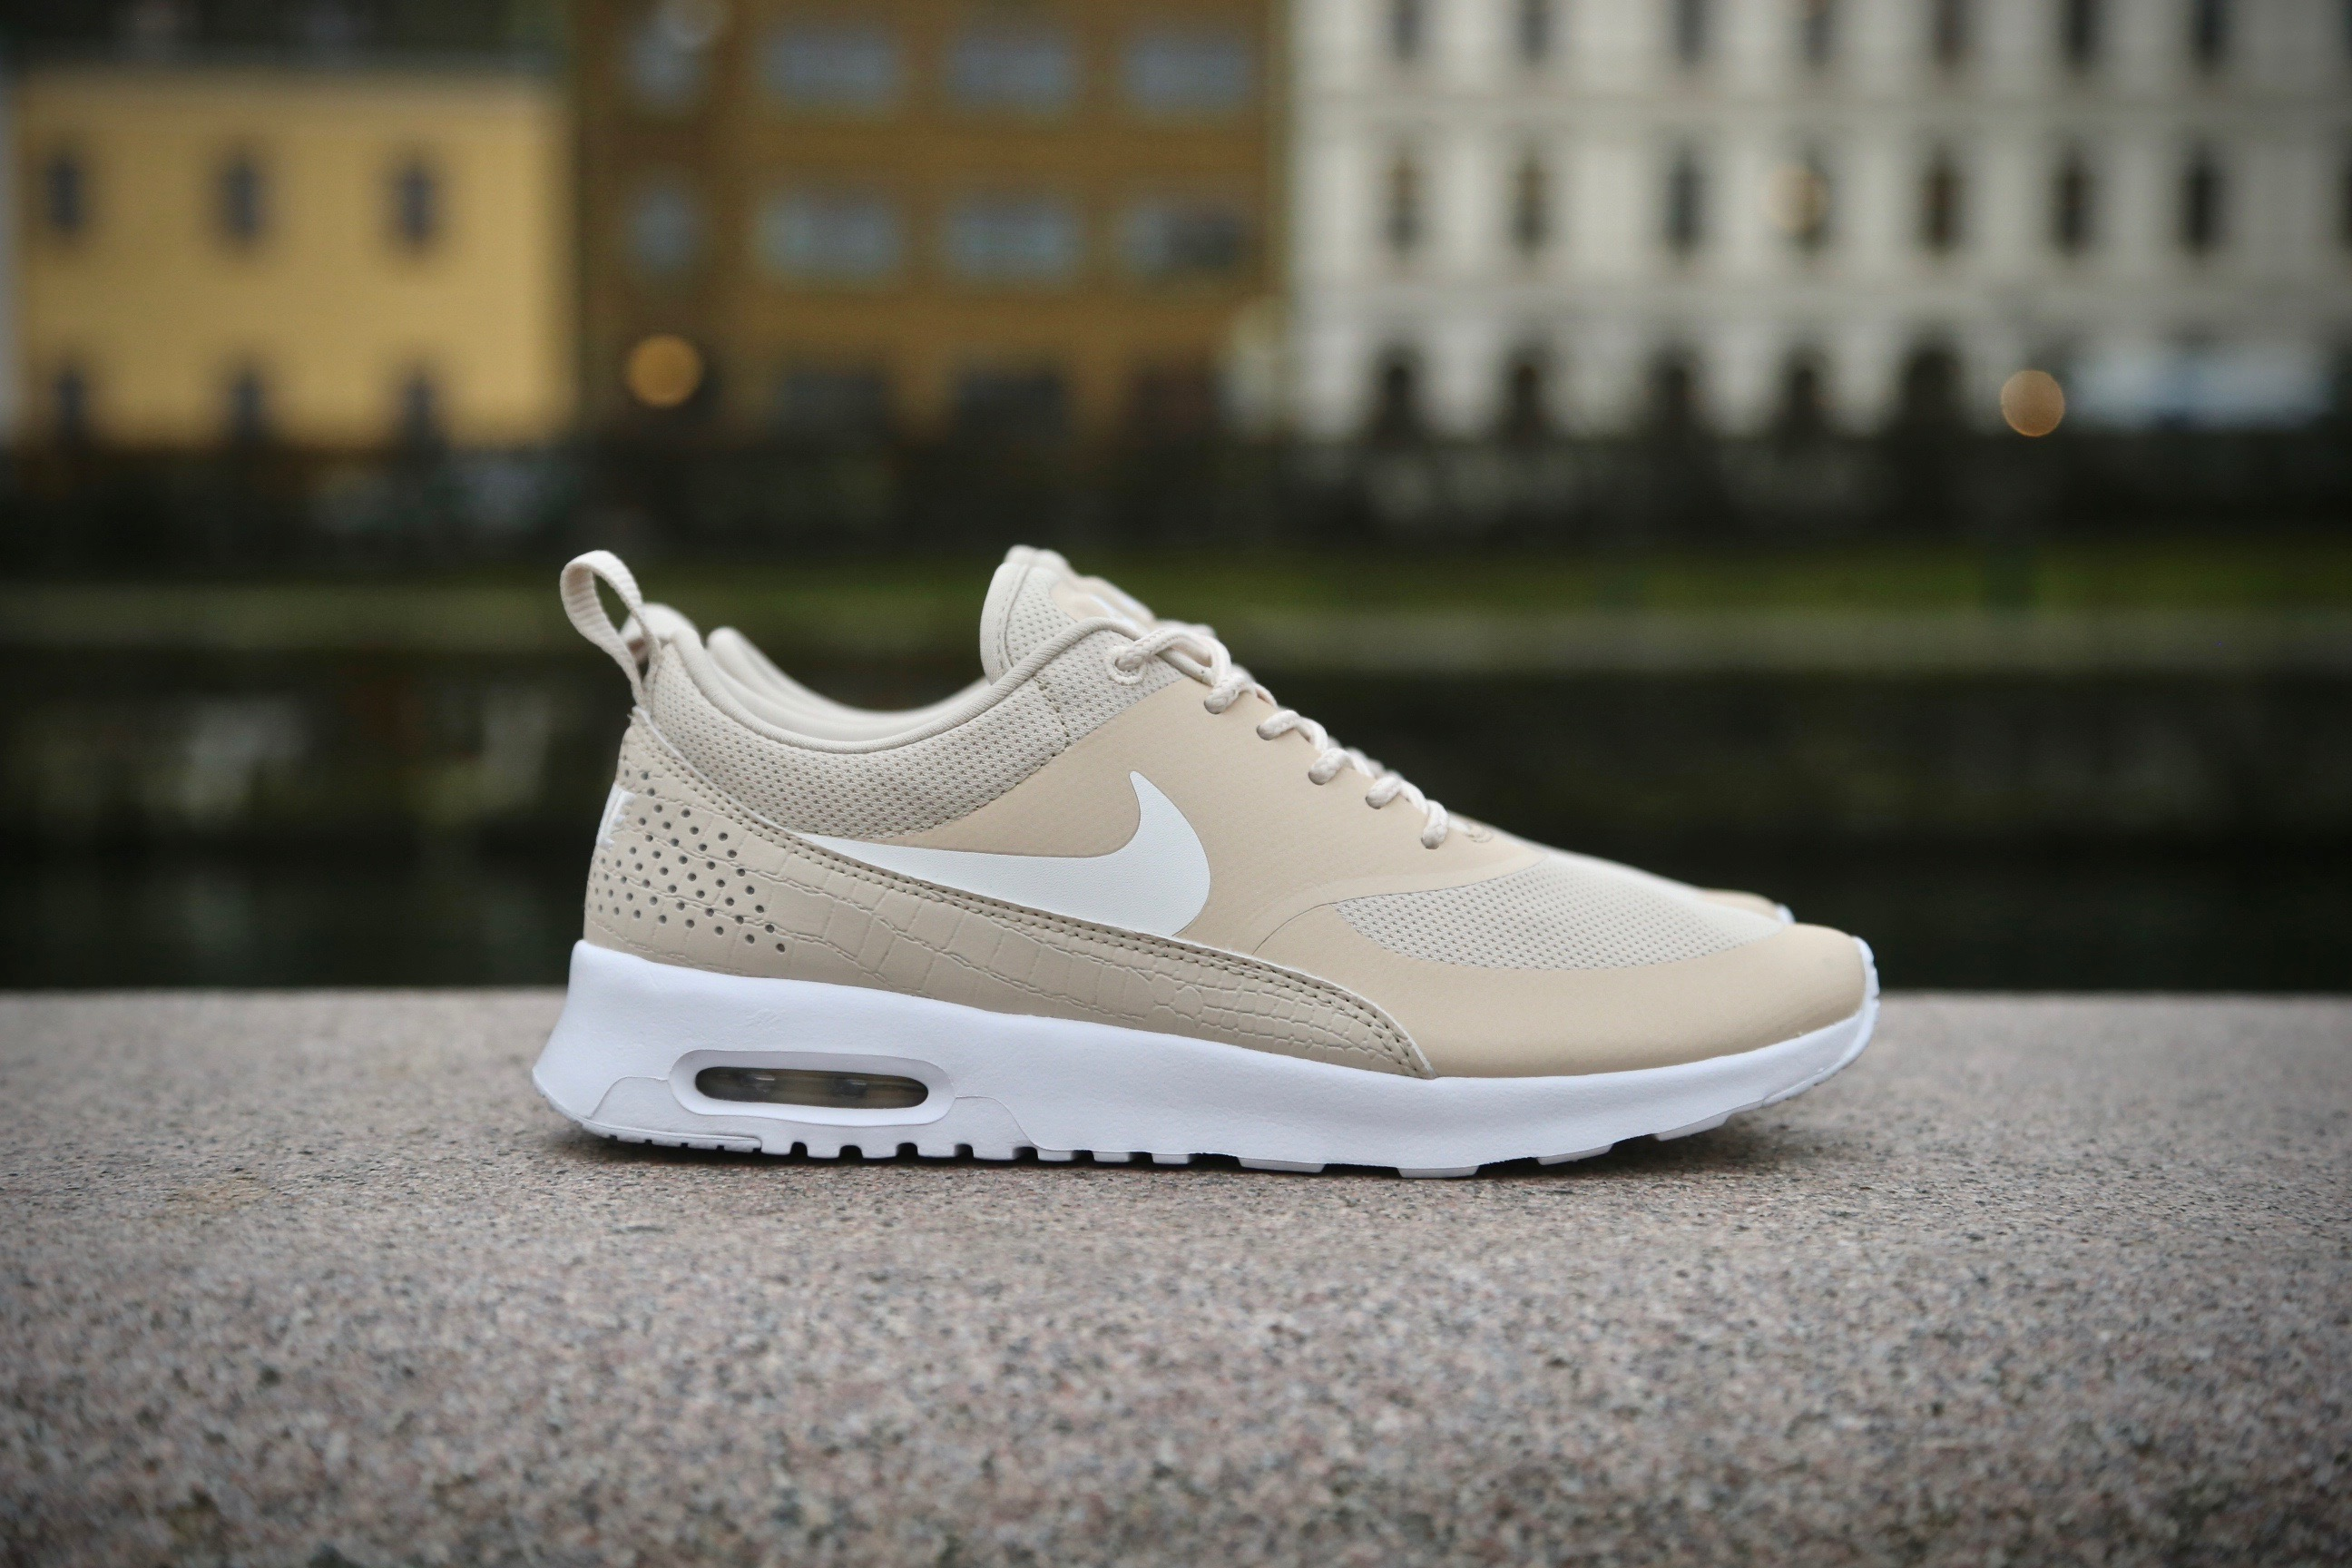 nike wmns air max thea oatmeal sail white stasp. Black Bedroom Furniture Sets. Home Design Ideas